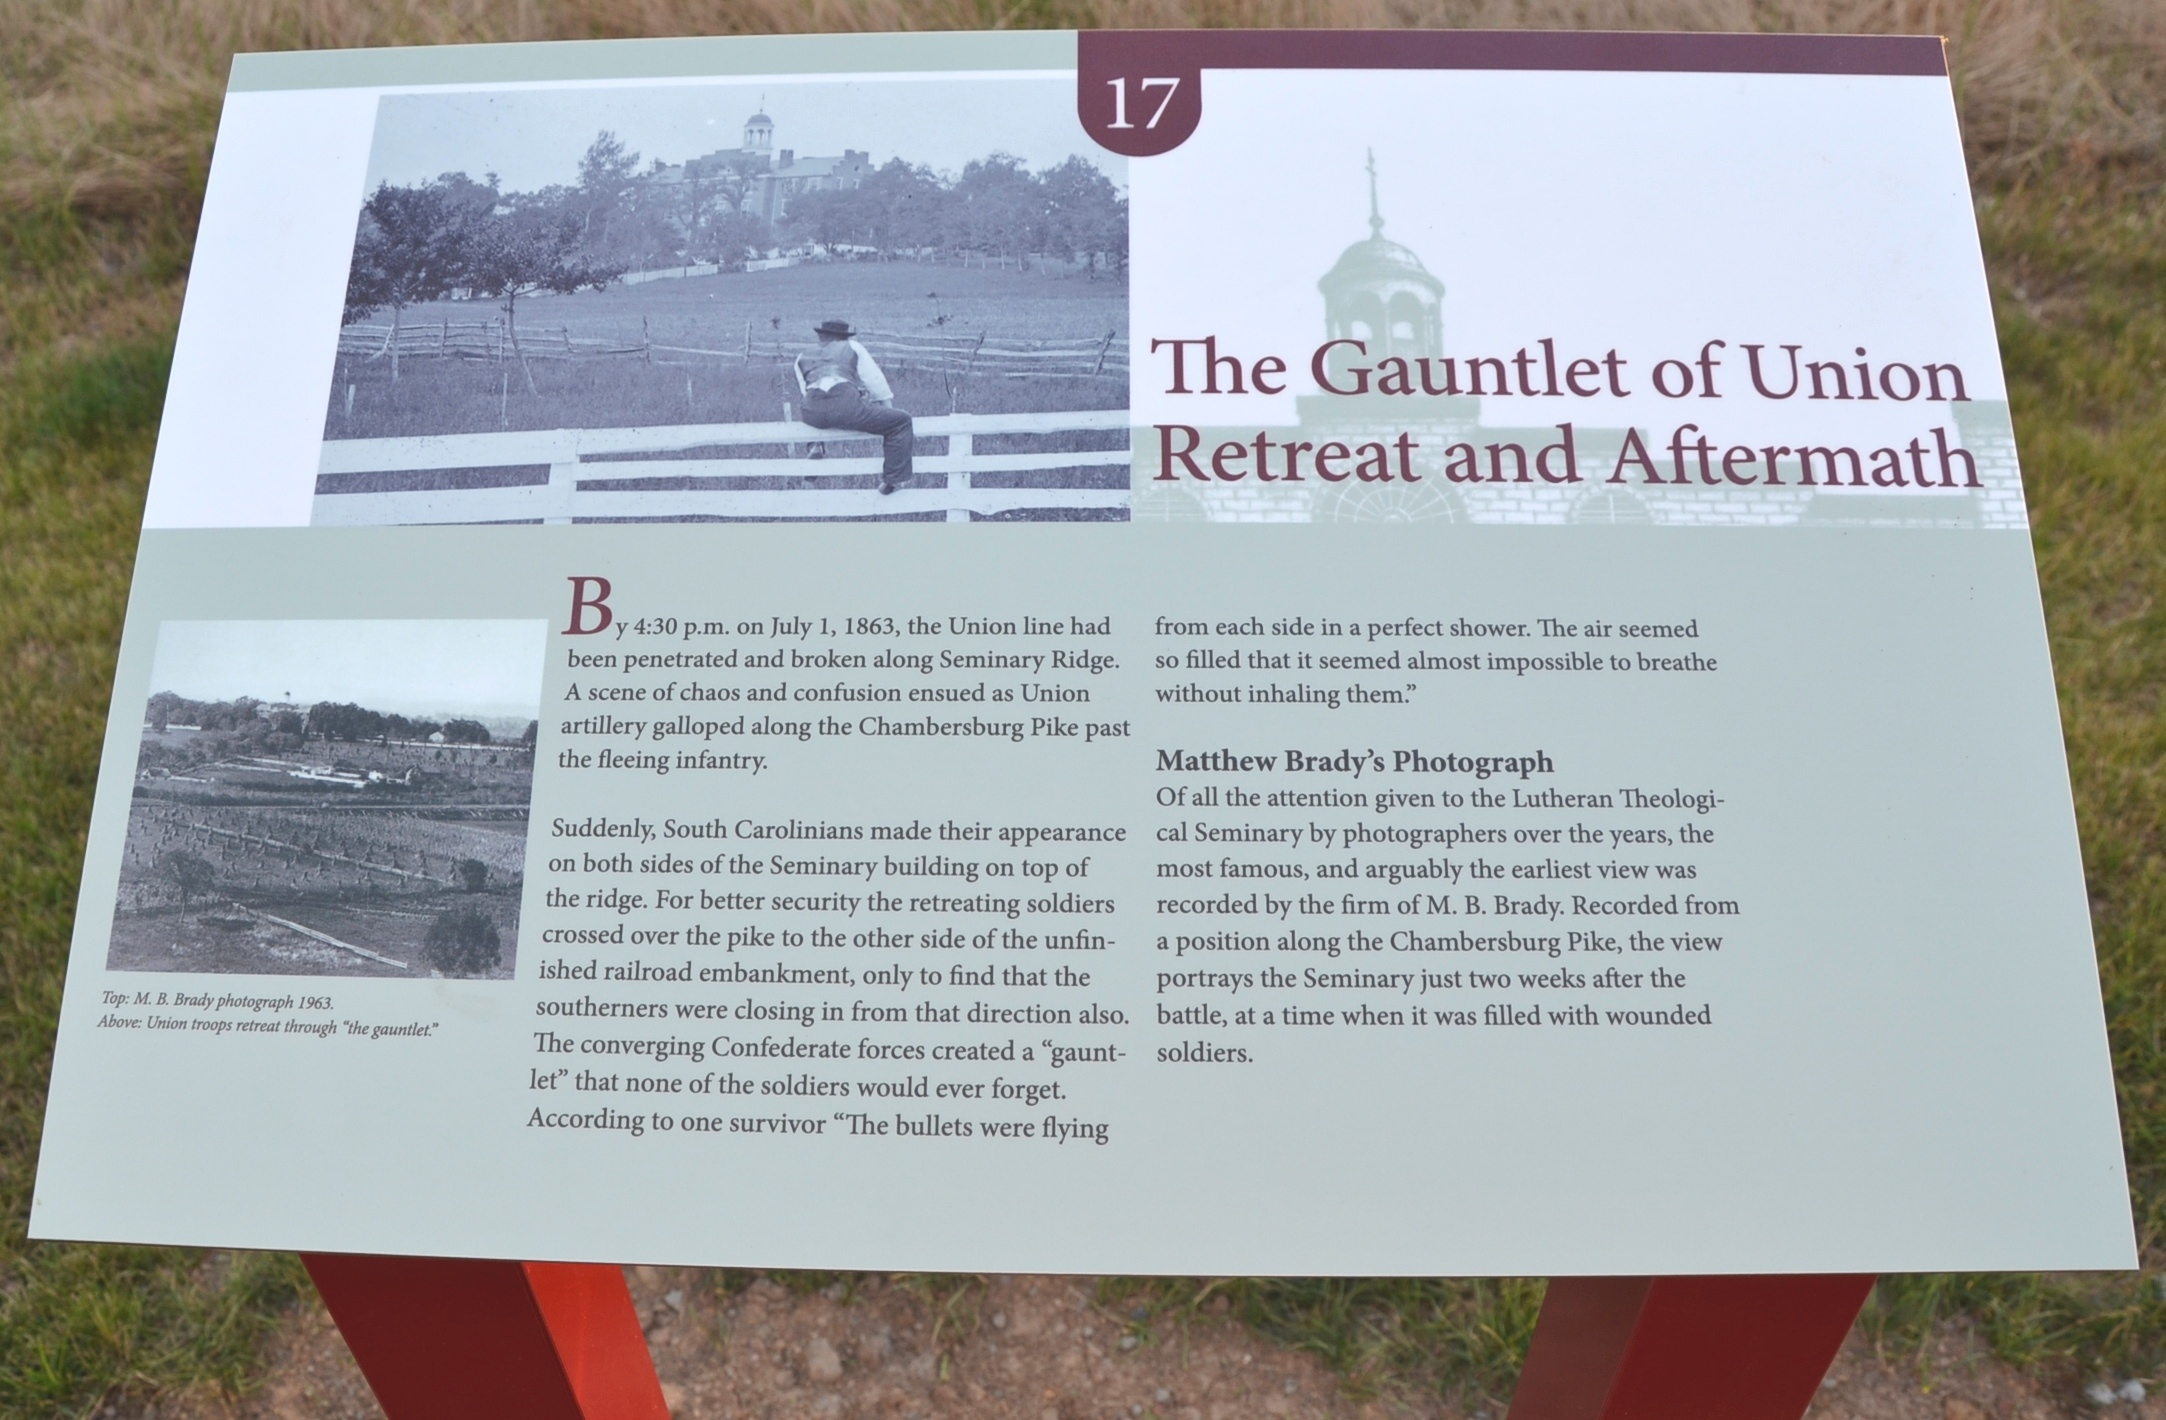 The Gauntlet of Union Retreat and Aftermath Marker